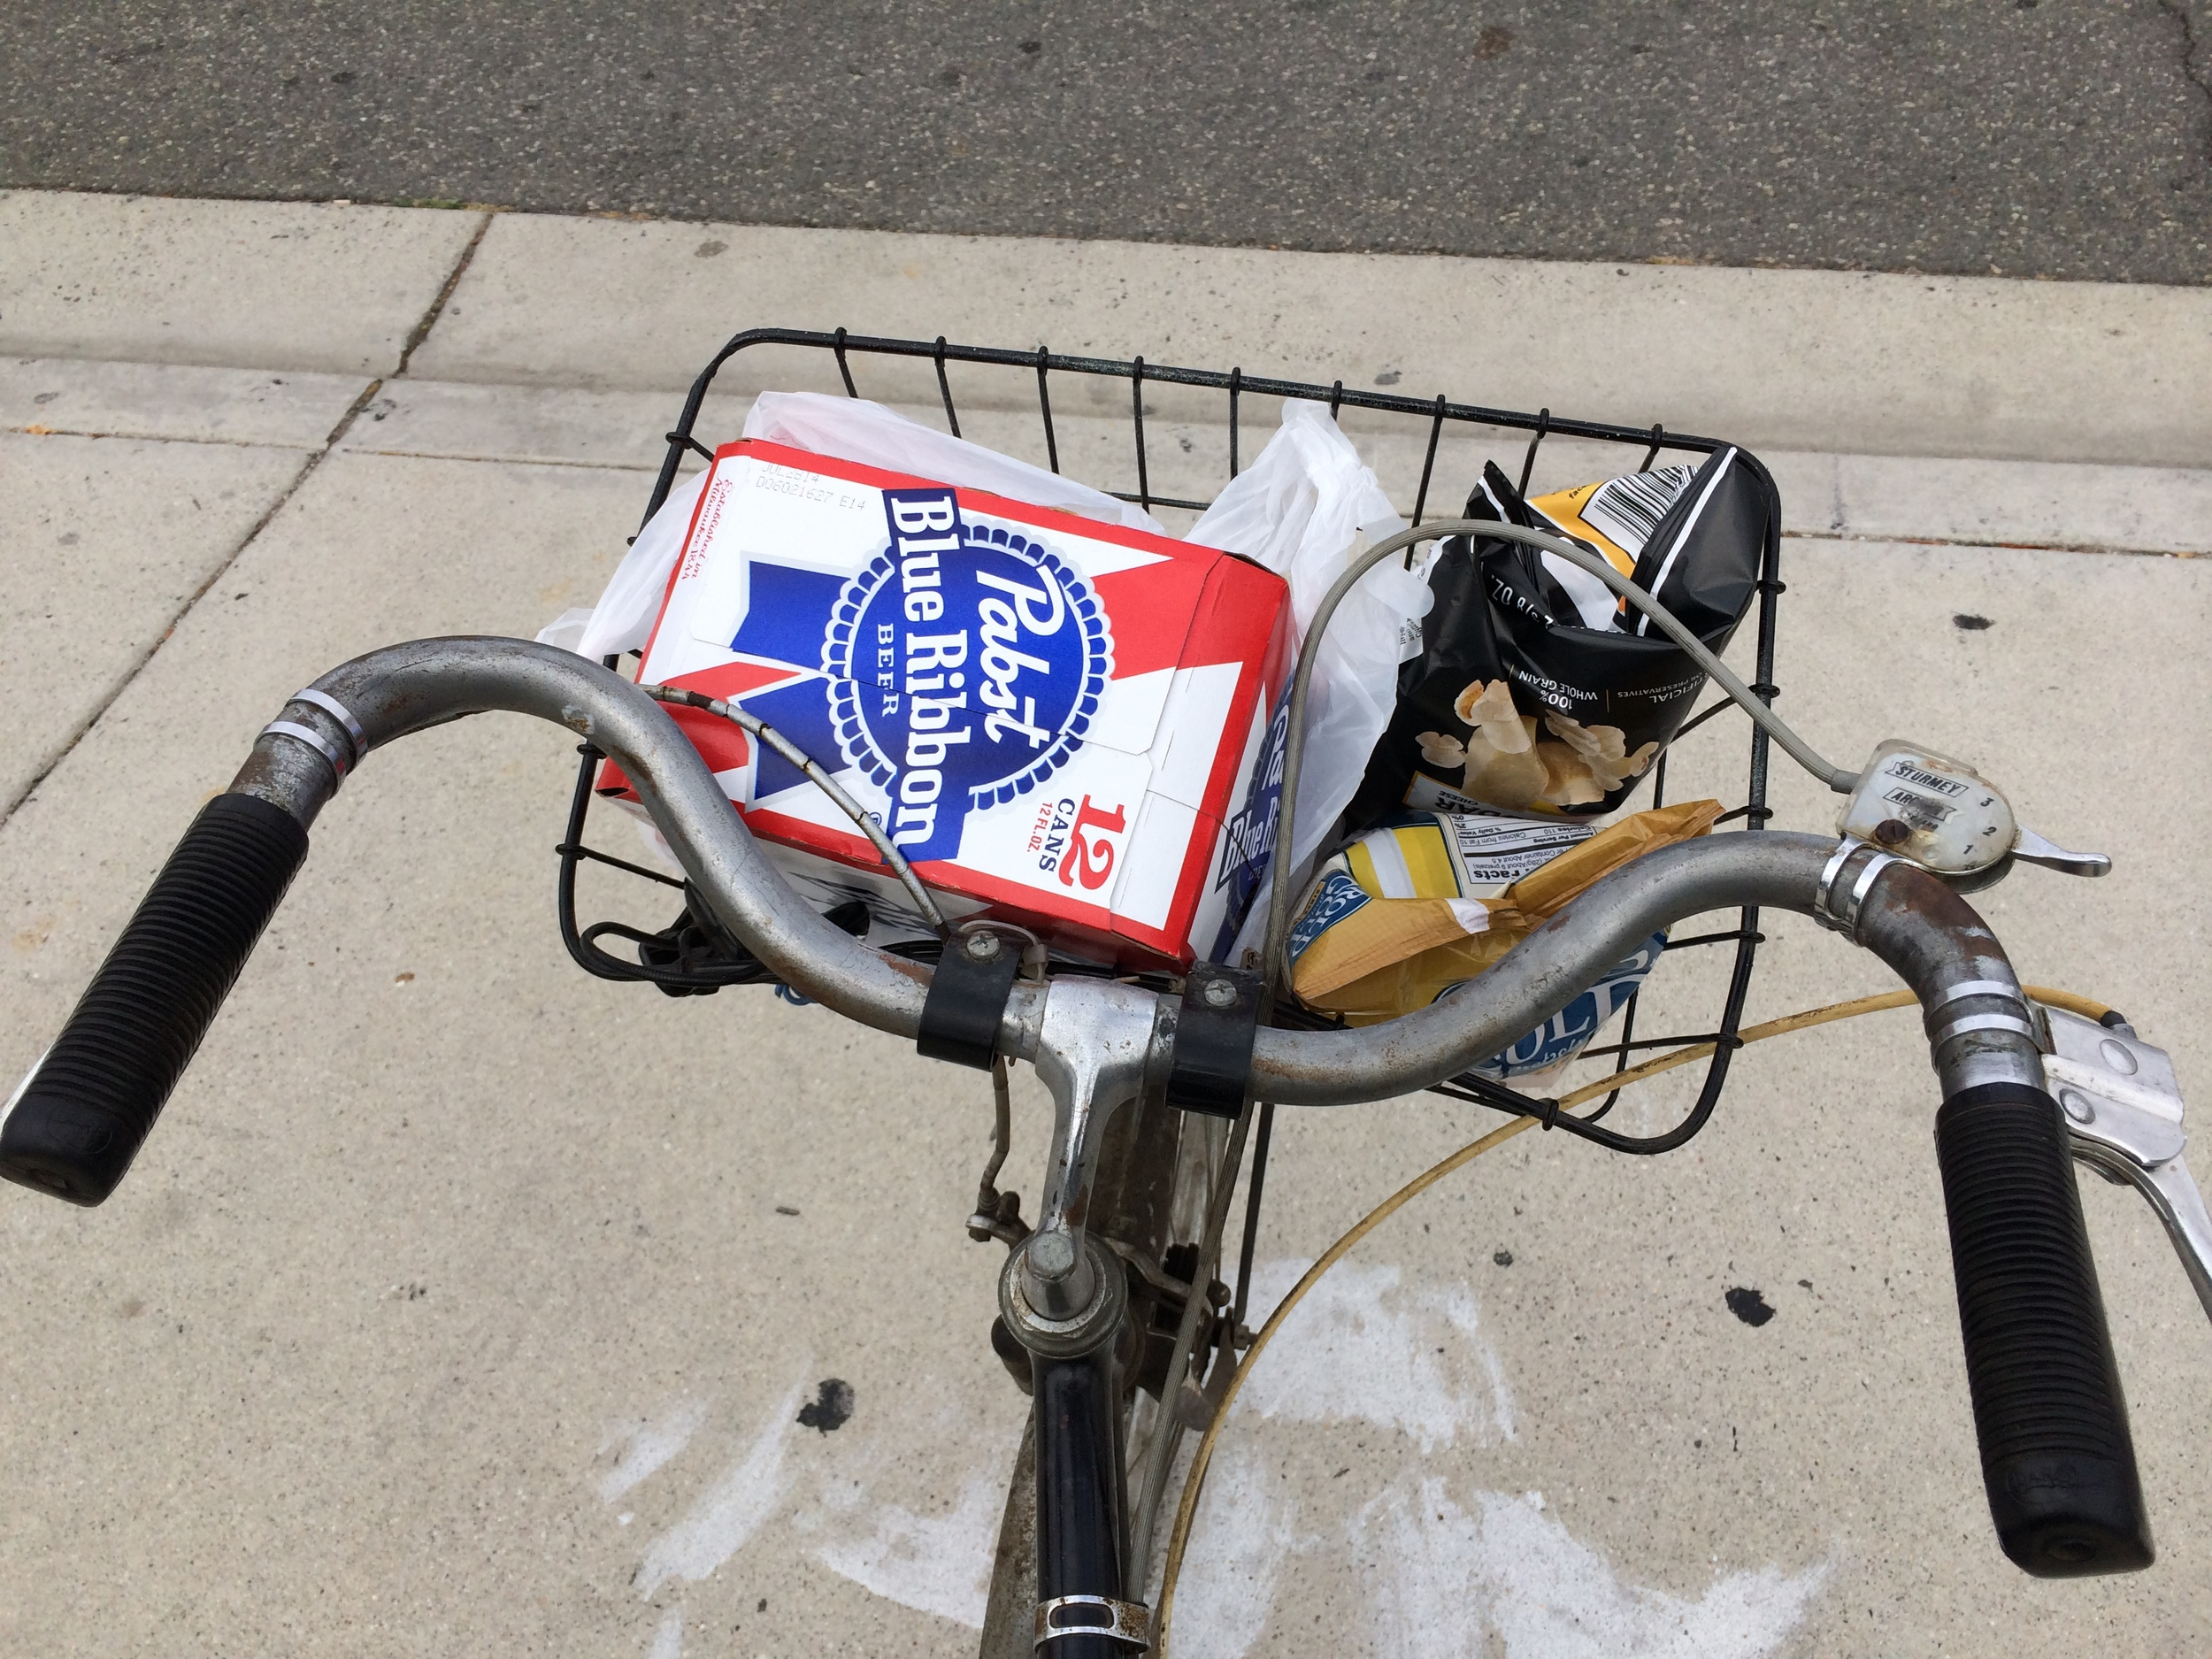 Pabst bike run to Abe's